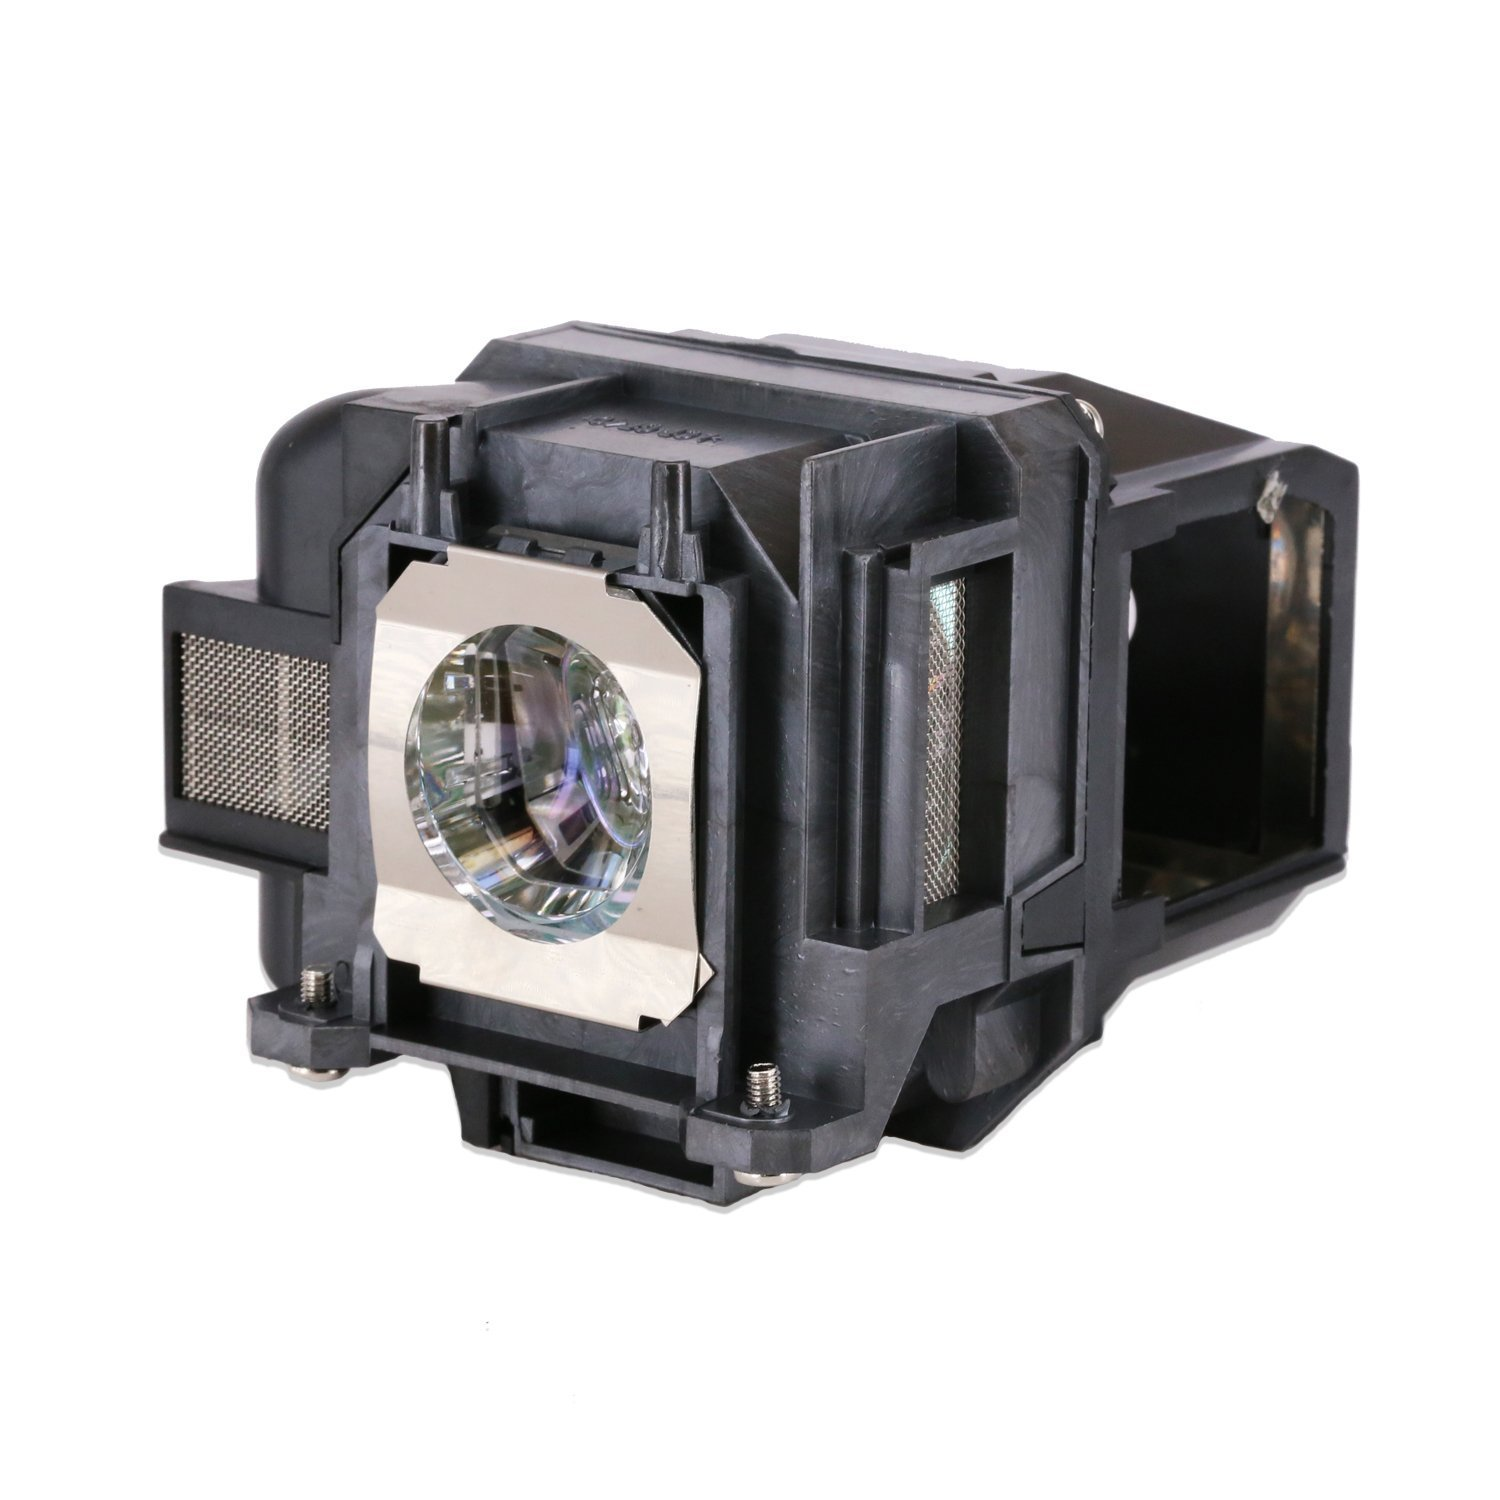 Kingoo Excellent Projector Lamp For EPSON PowerLite X27 Replacement projector Lamp Bulb with Housing